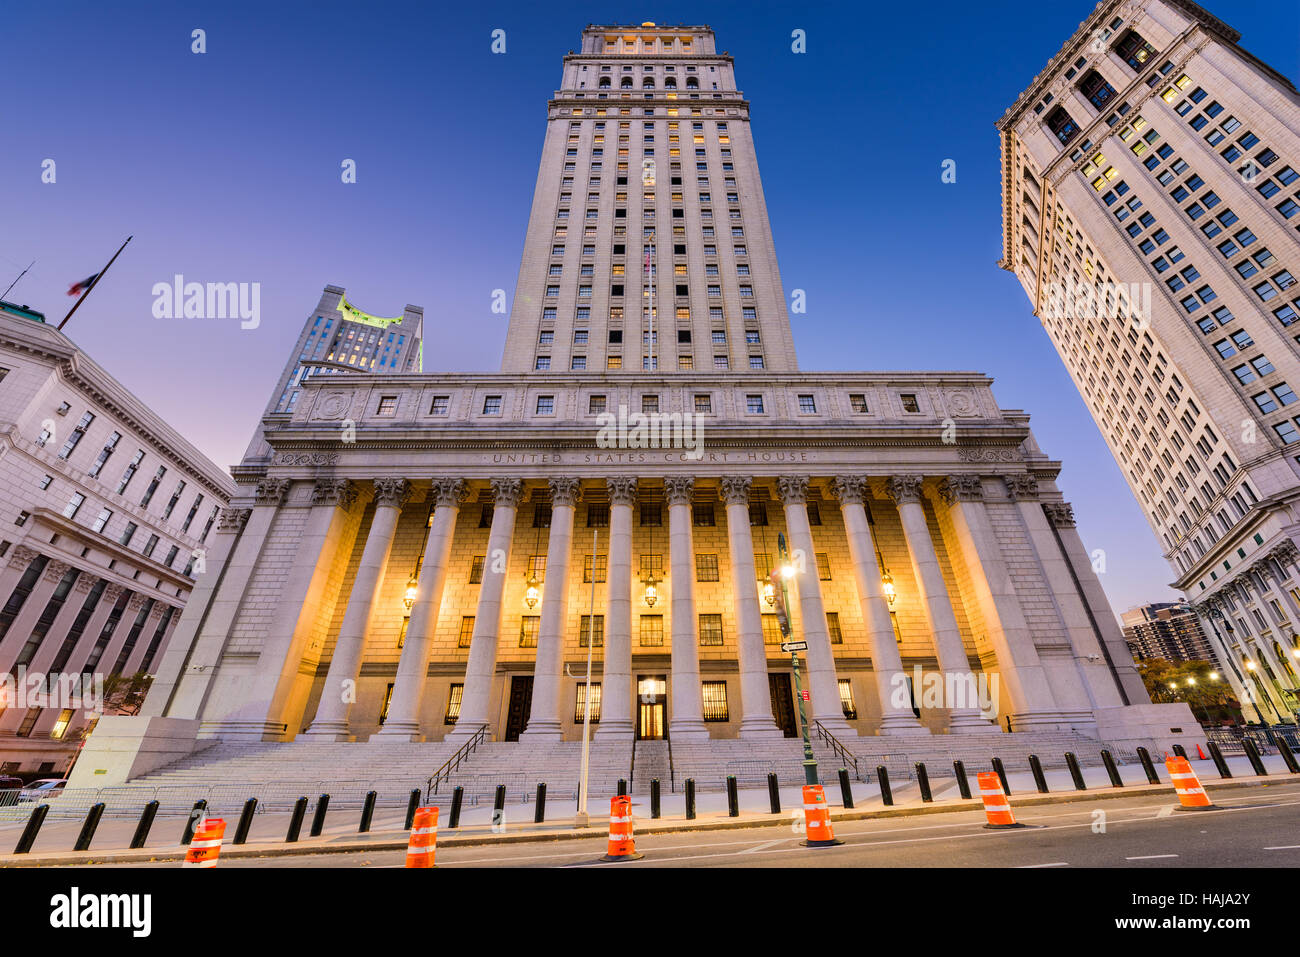 United States Court House in the Civic Center district of New York City. - Stock Image